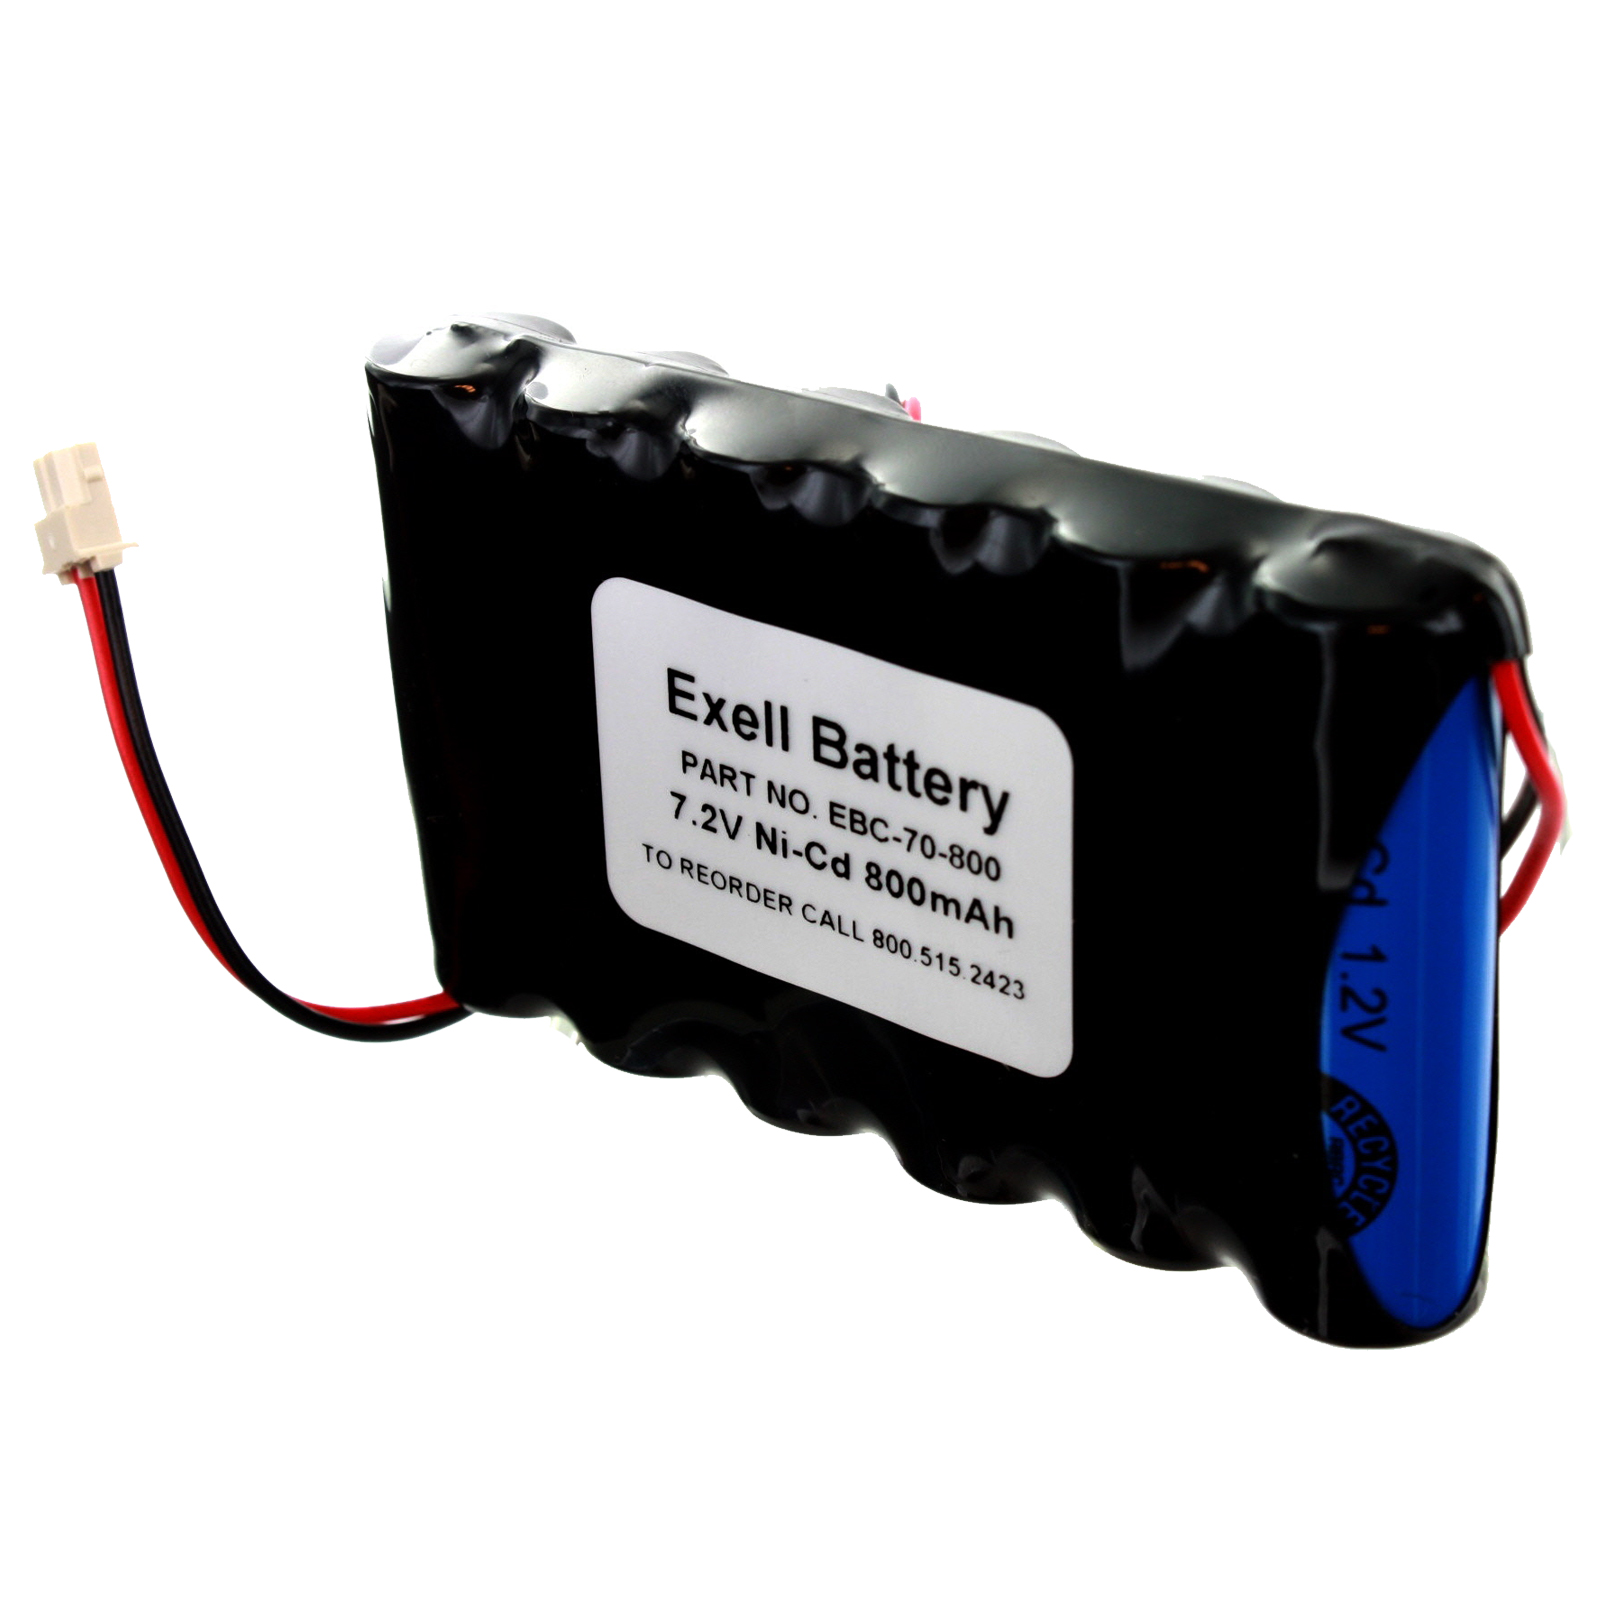 Battery for alarm system 19